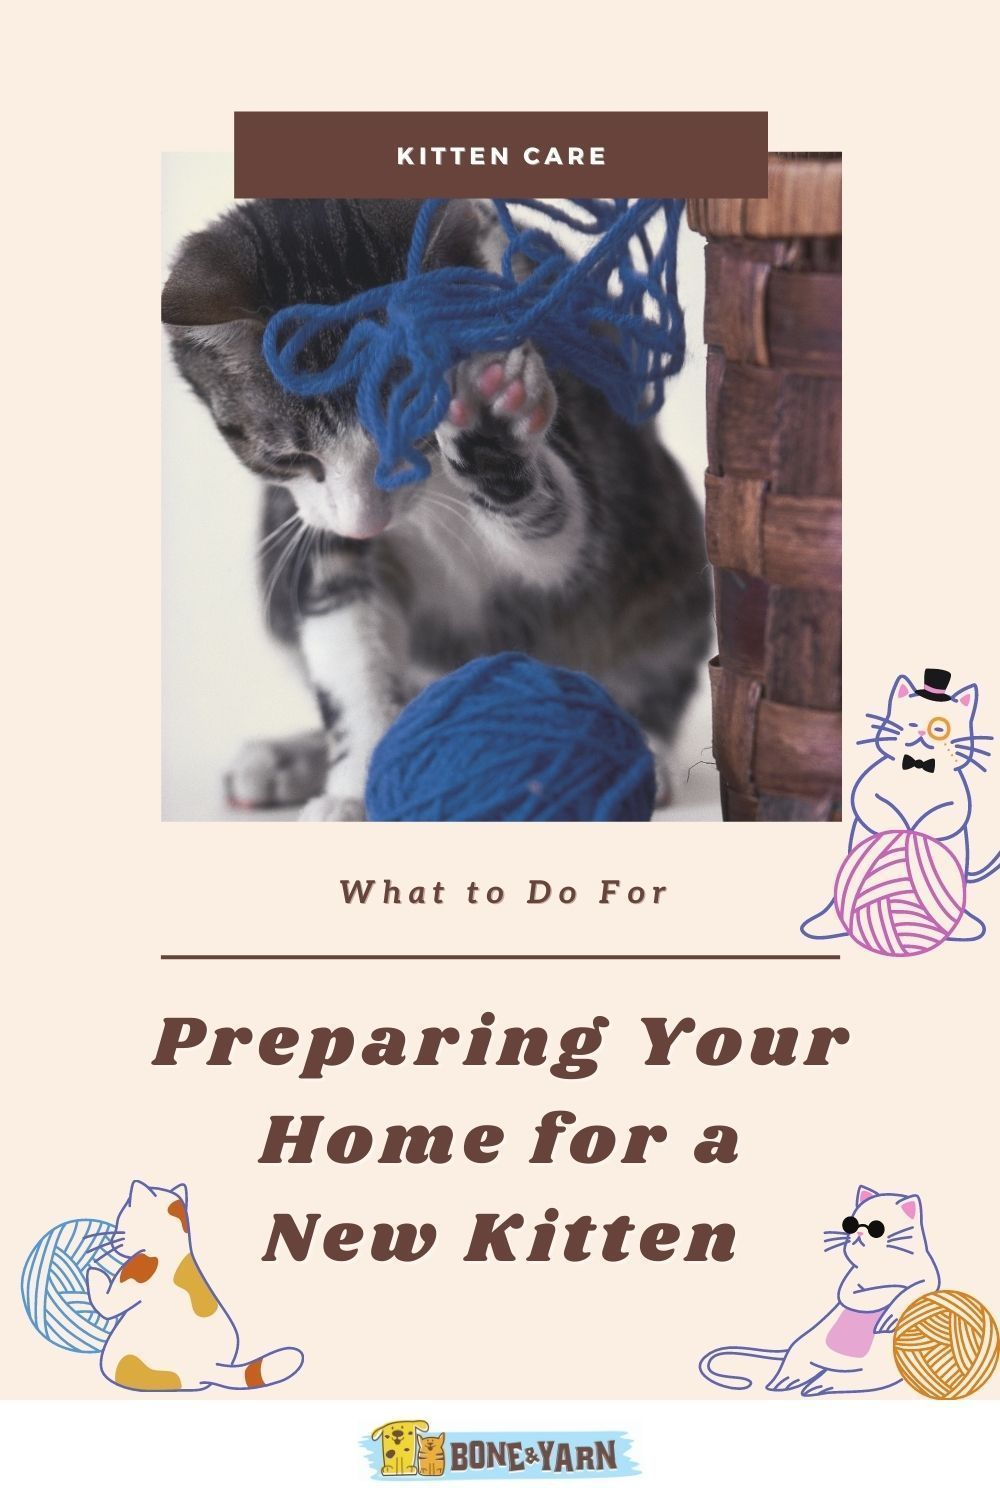 Preparing Your Home For A New Kitten In 2020 Kitten Care Kitten Cat Care